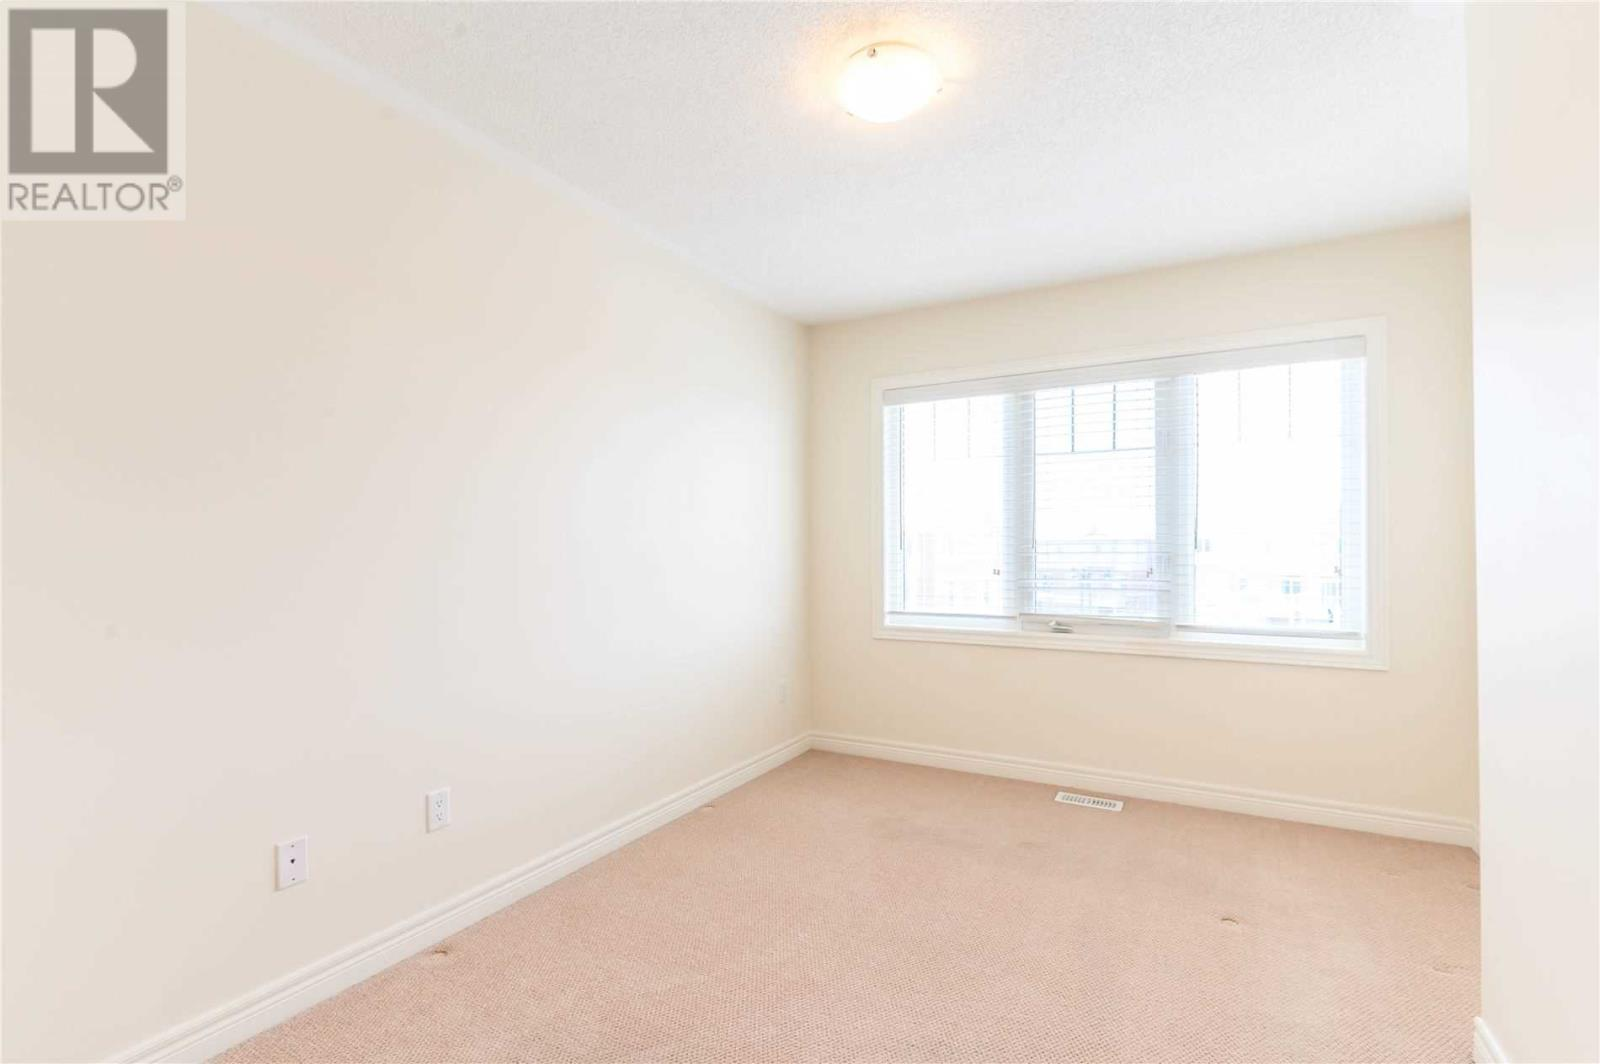 5710 Long Valley Rd, Mississauga, Ontario  L5M 0M1 - Photo 17 - W4674367